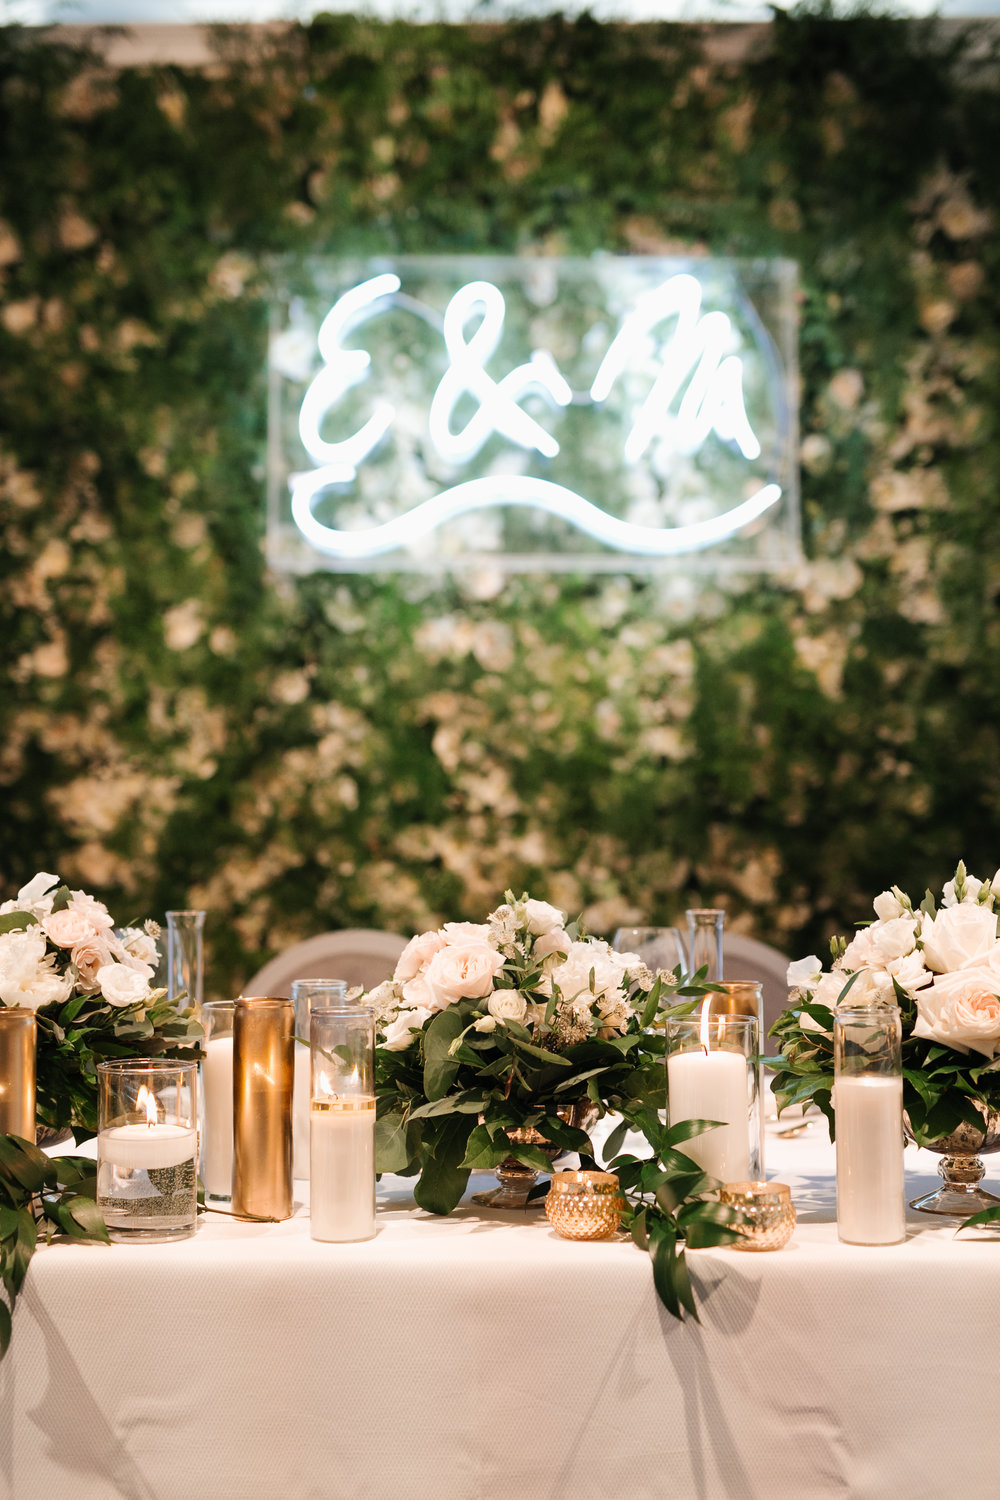 Light it Up!  The trendy, vibrant lights can boost your reception space, creating an ambient celebration vibe. Aside from the appeal of cool photo-ops, neon signs are functional, and design-savvy couples can later incorporate them into their newlywed homes.  Photo:  Mango Studios   Neon Sign: RDT Events